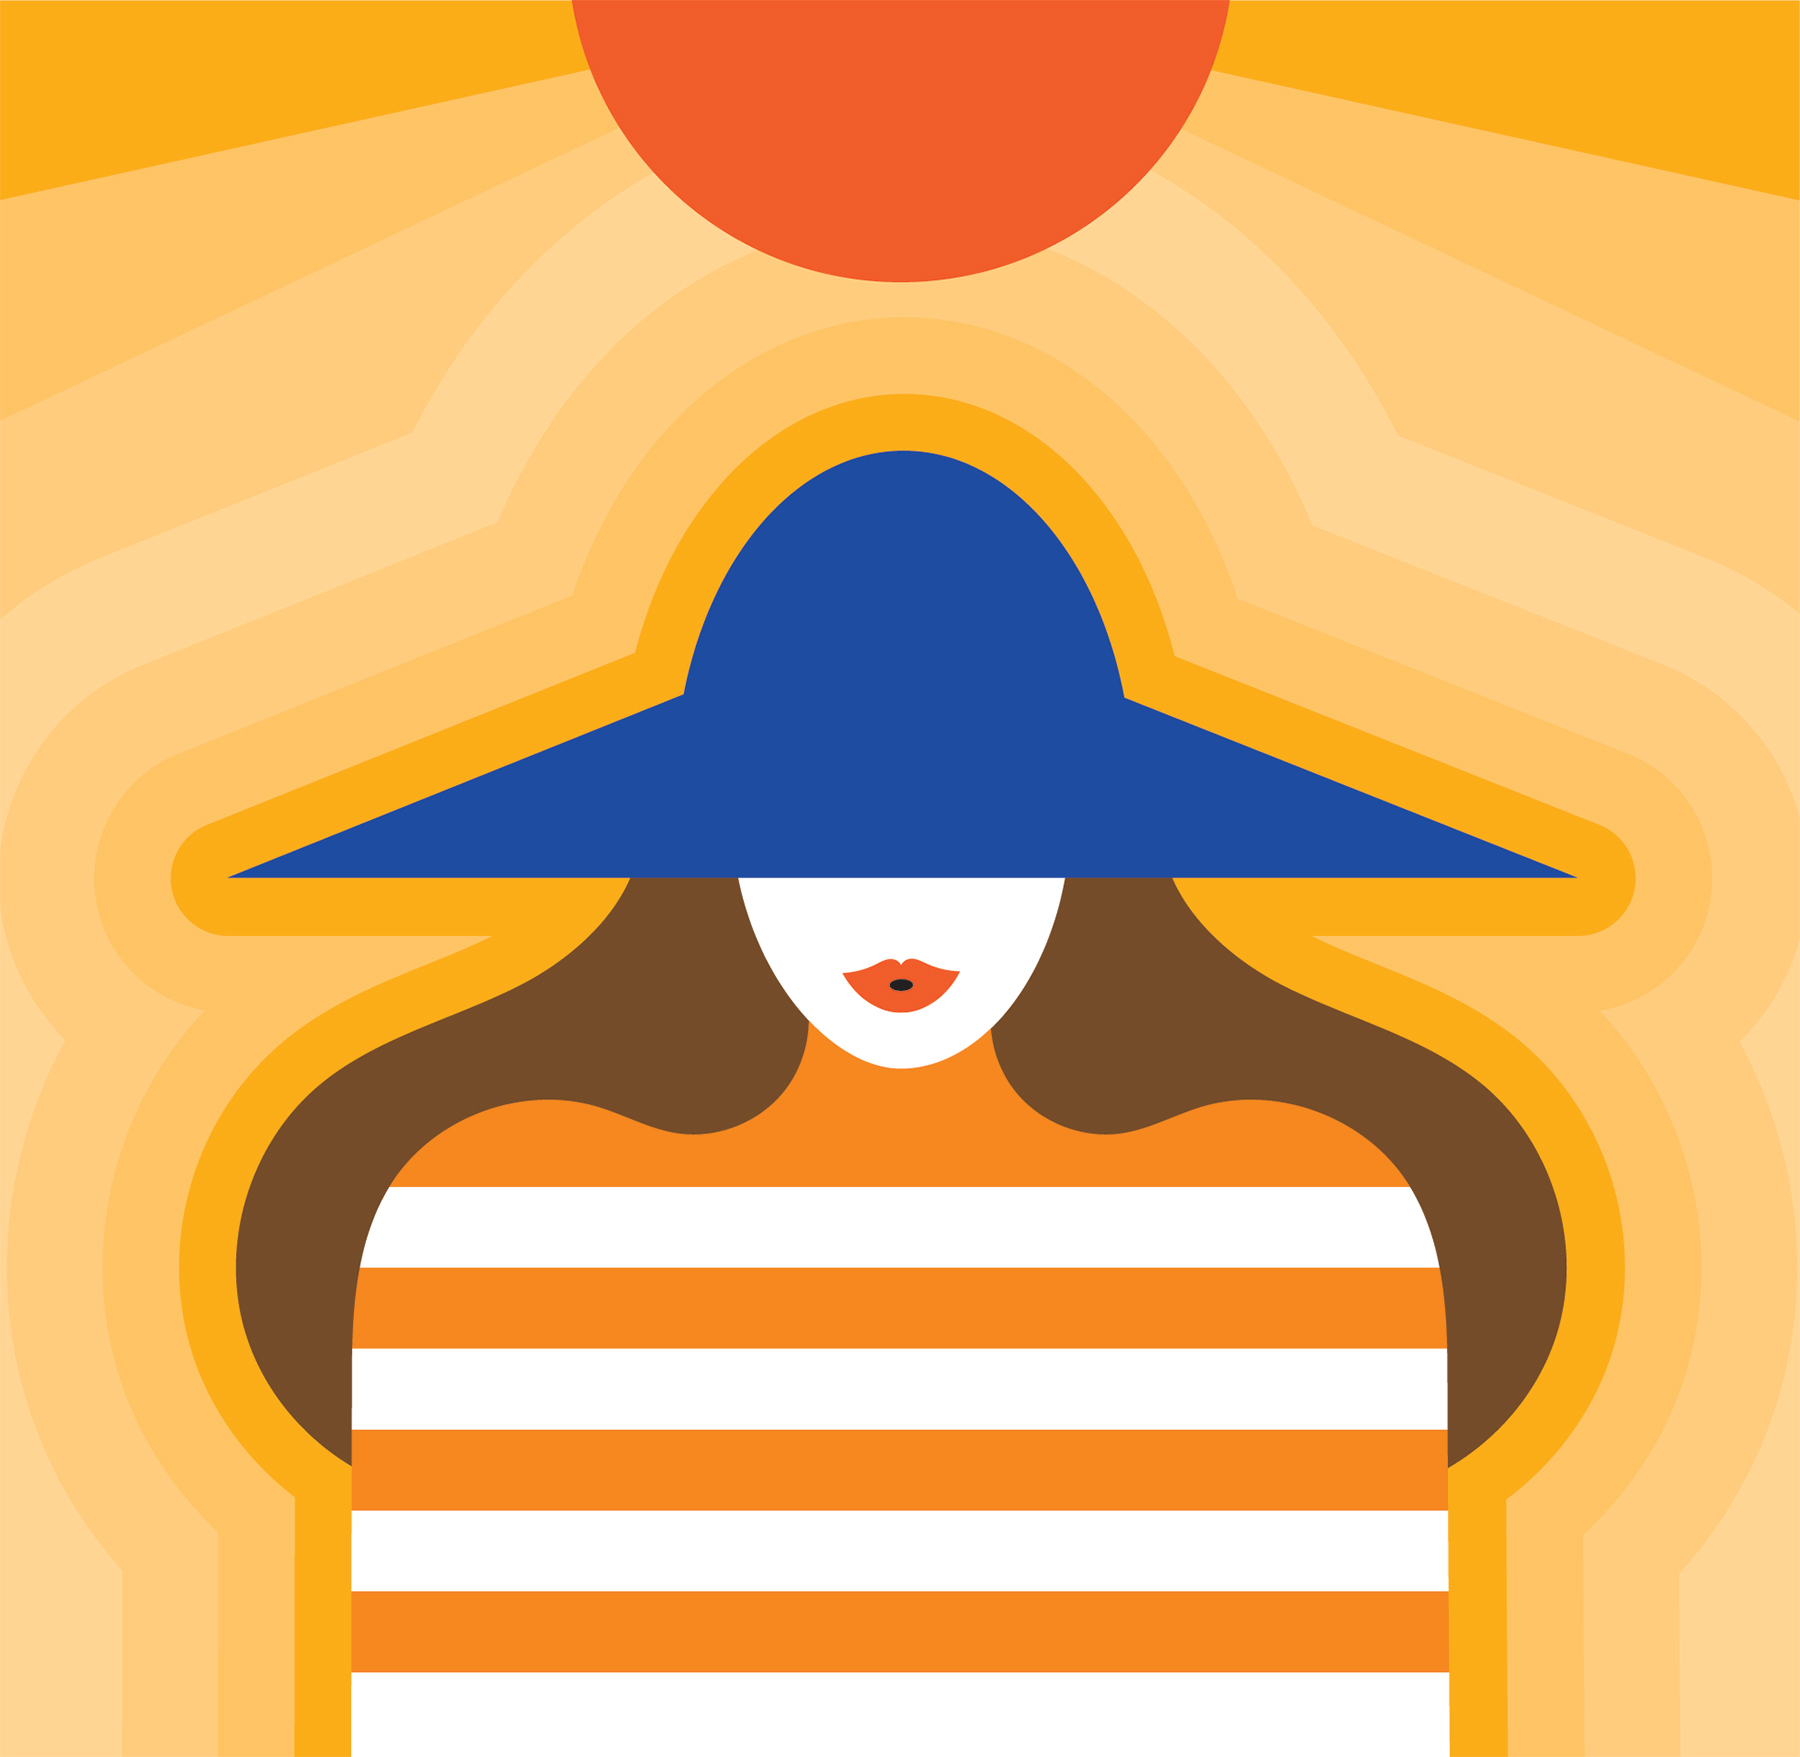 How to Apply Sunscreen, According to Dermatologists